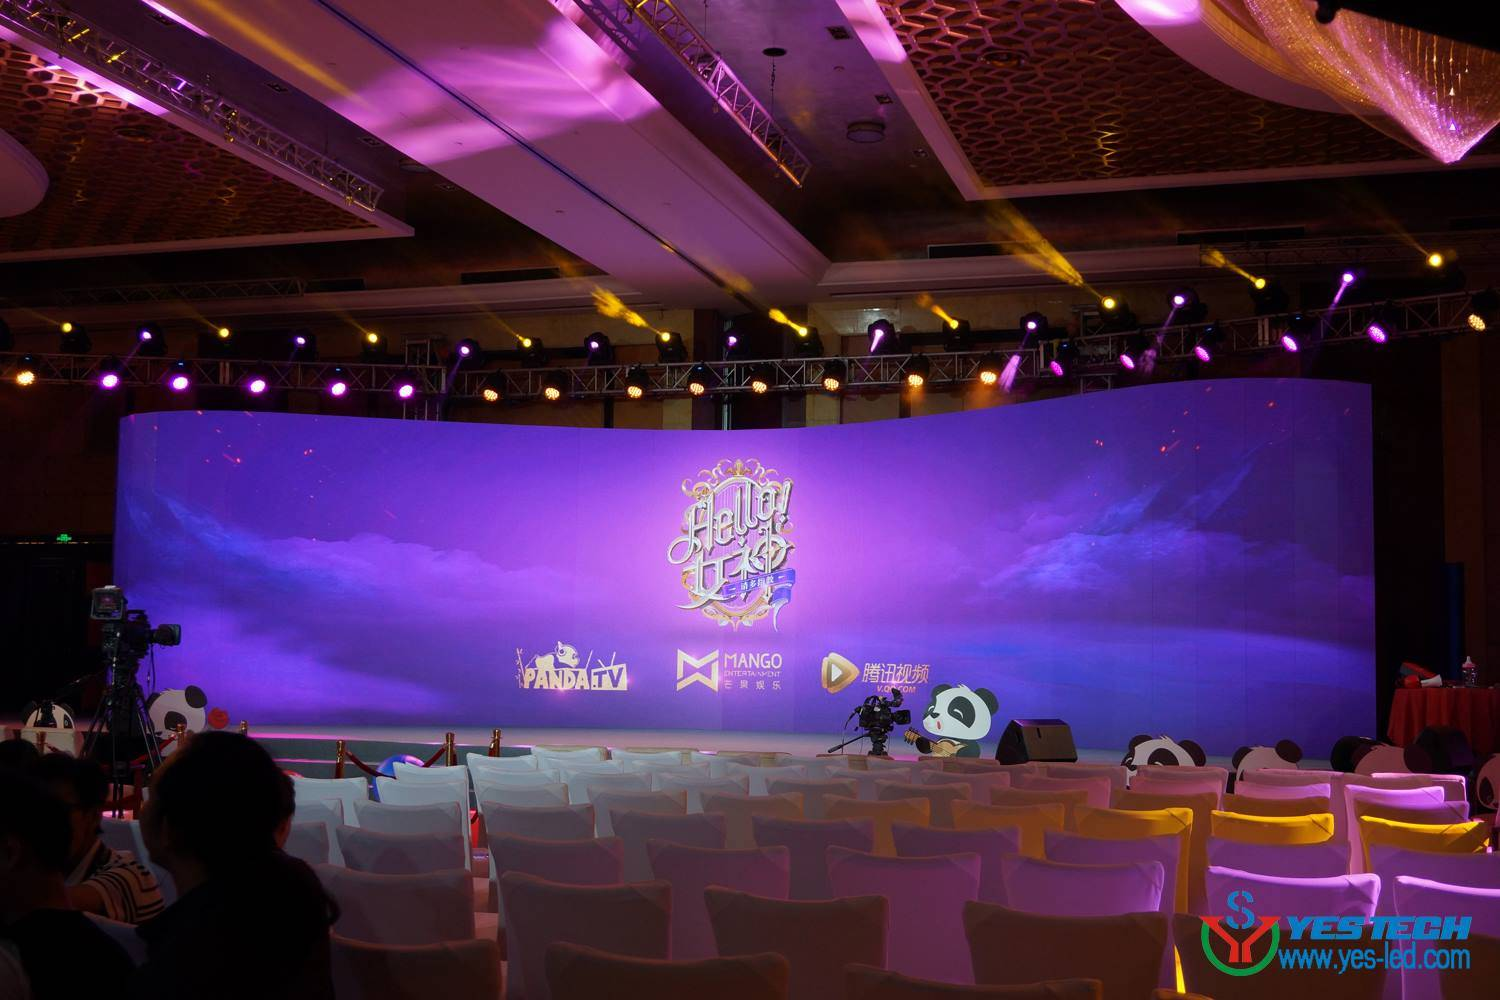 curve shapes concert stage P4 led indoor wall screen